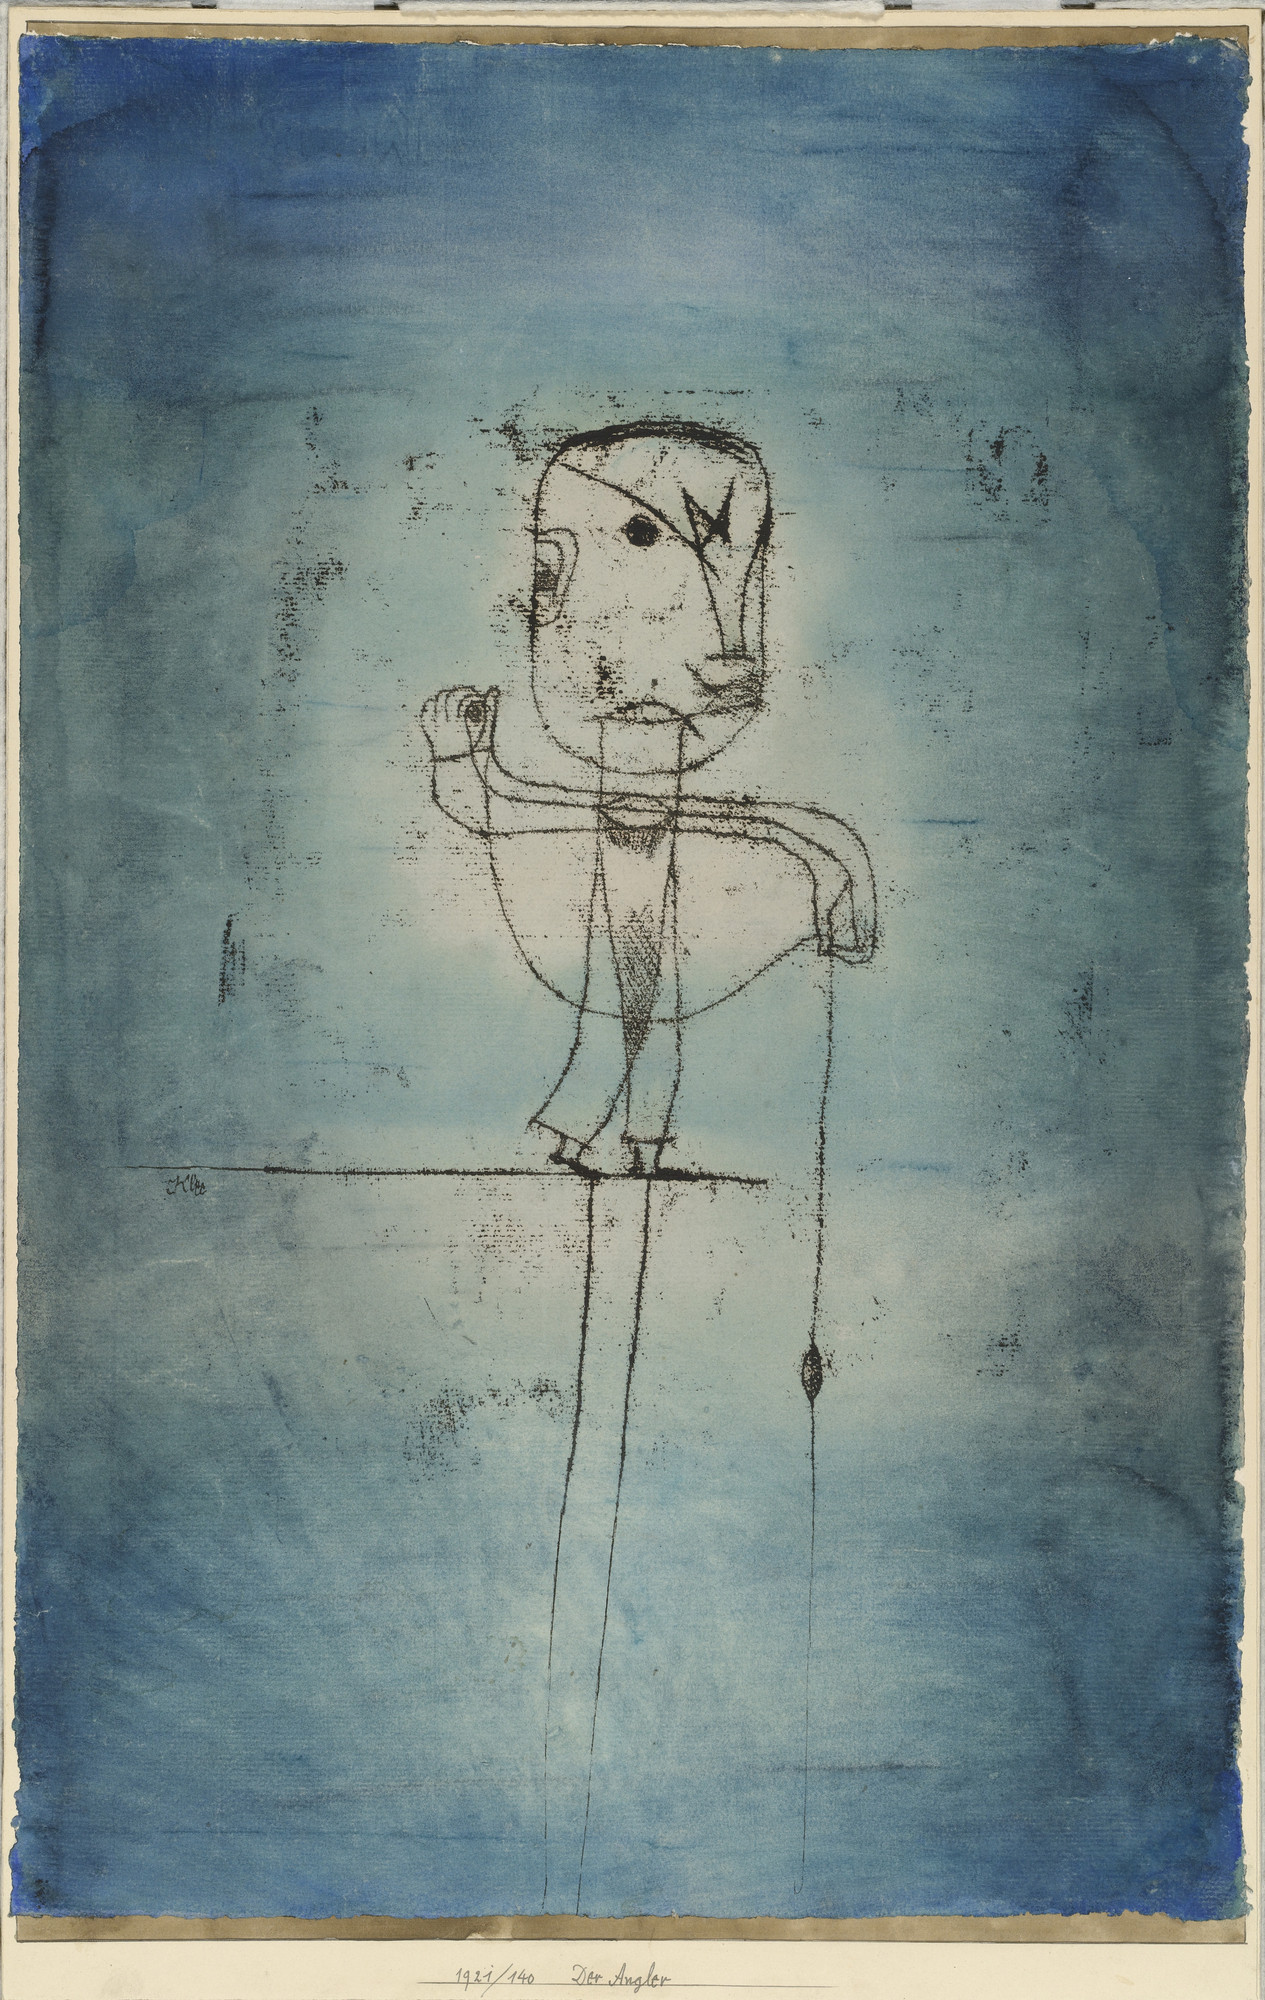 Paul Klee. The Angler (Der Angler). 1921